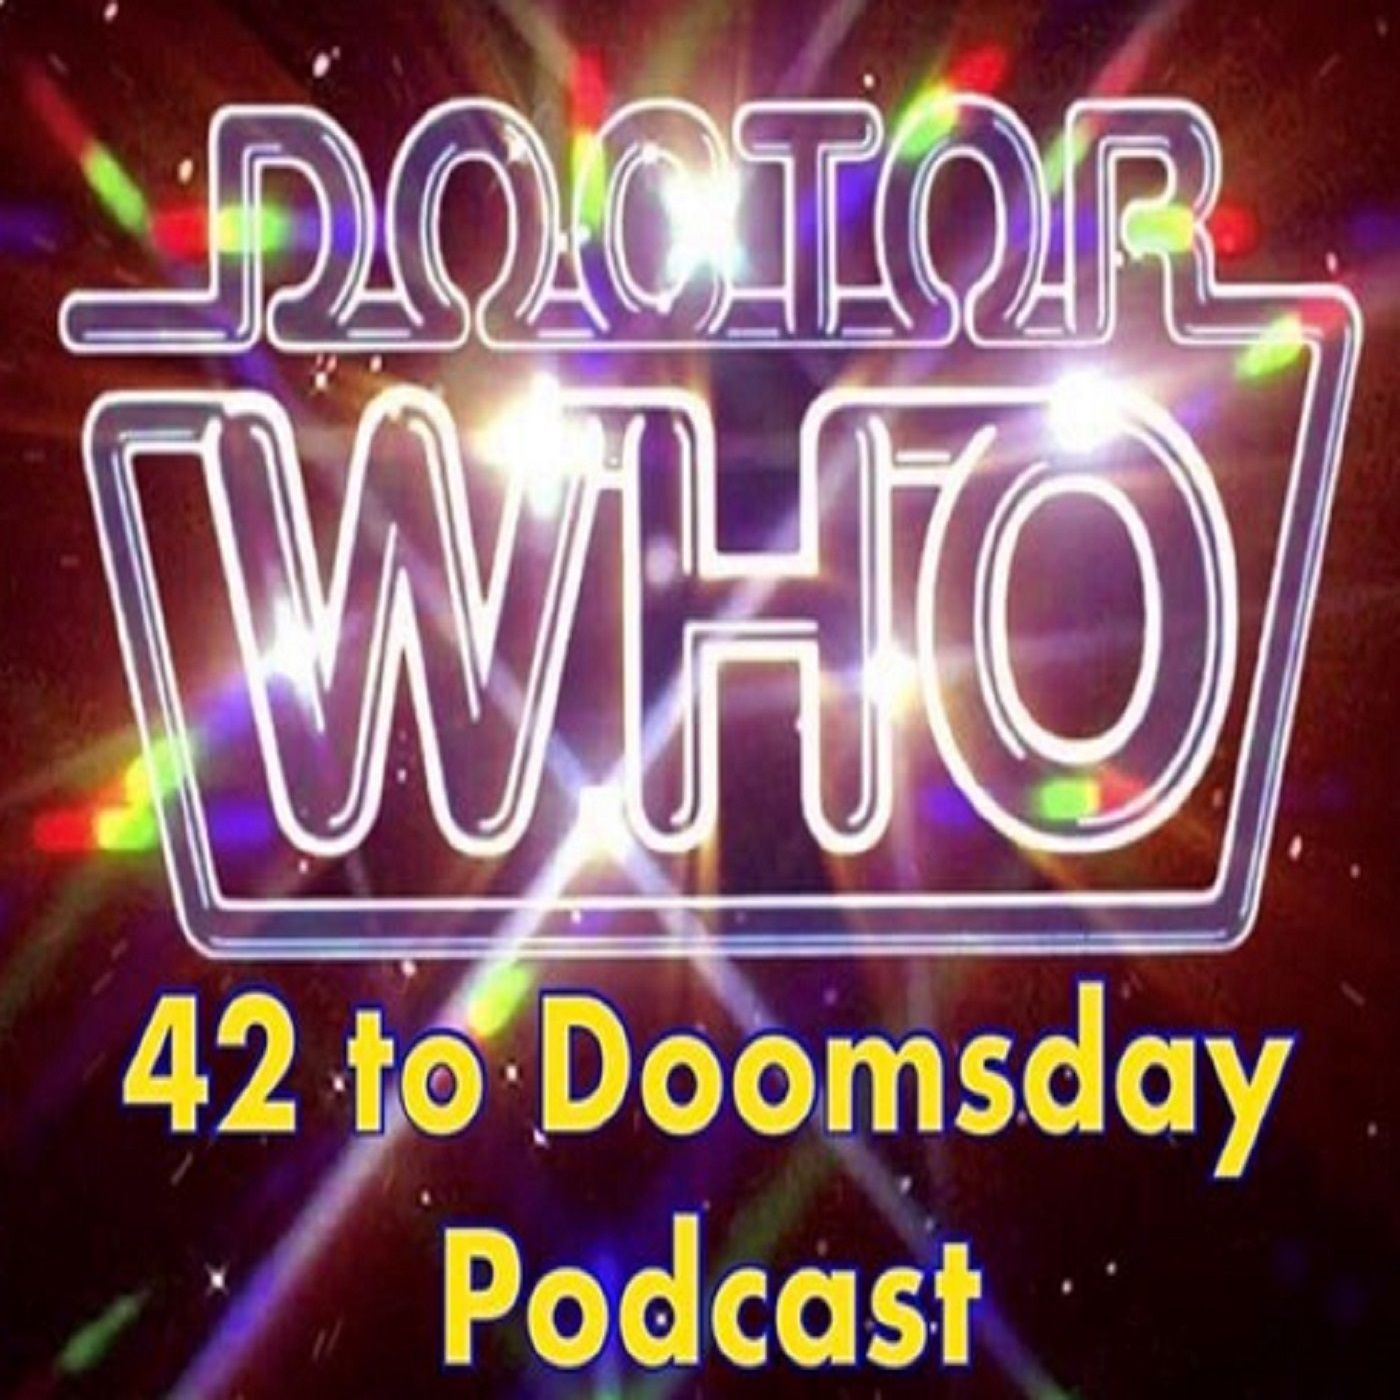 Doctor Who: 42 To Doomsday